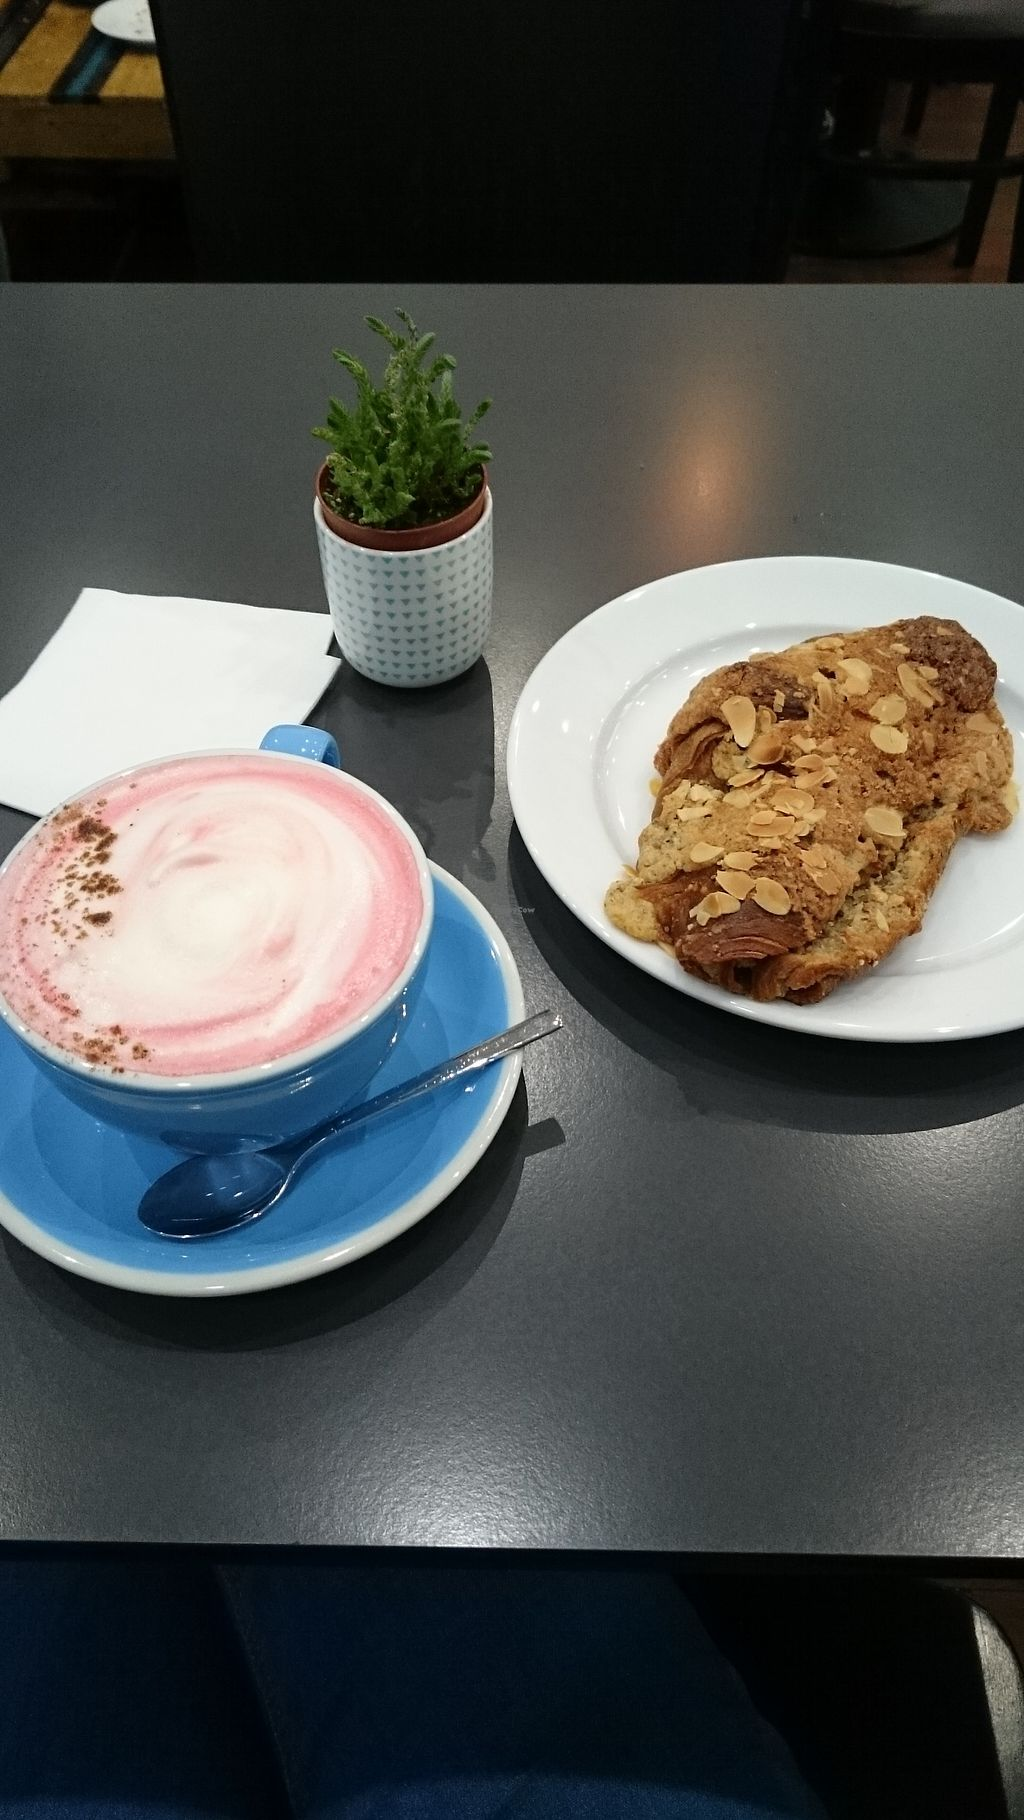 "Photo of Cloud Cakes  by <a href=""/members/profile/Layra"">Layra</a> <br/>ginger beetroot latte and almond croissant <br/> March 1, 2018  - <a href='/contact/abuse/image/80175/365501'>Report</a>"